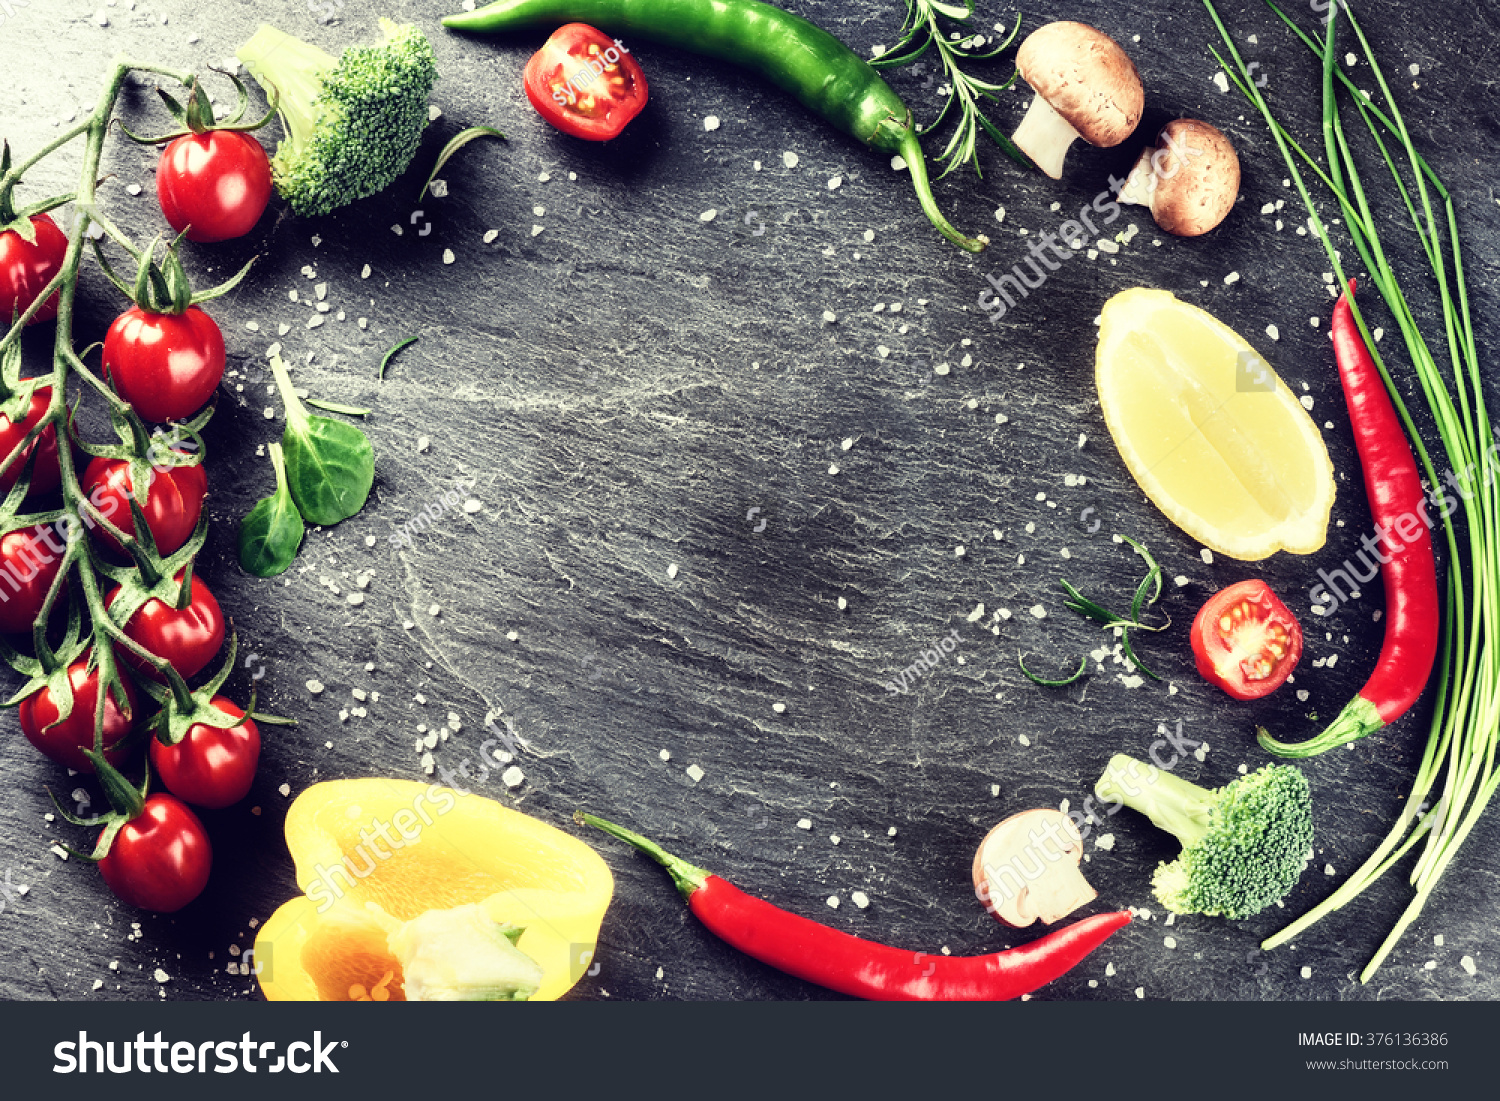 Frame fresh organic vegetables herbs healthy stock photo 376136386 shutterstock - Growing vegetables in a small space concept ...